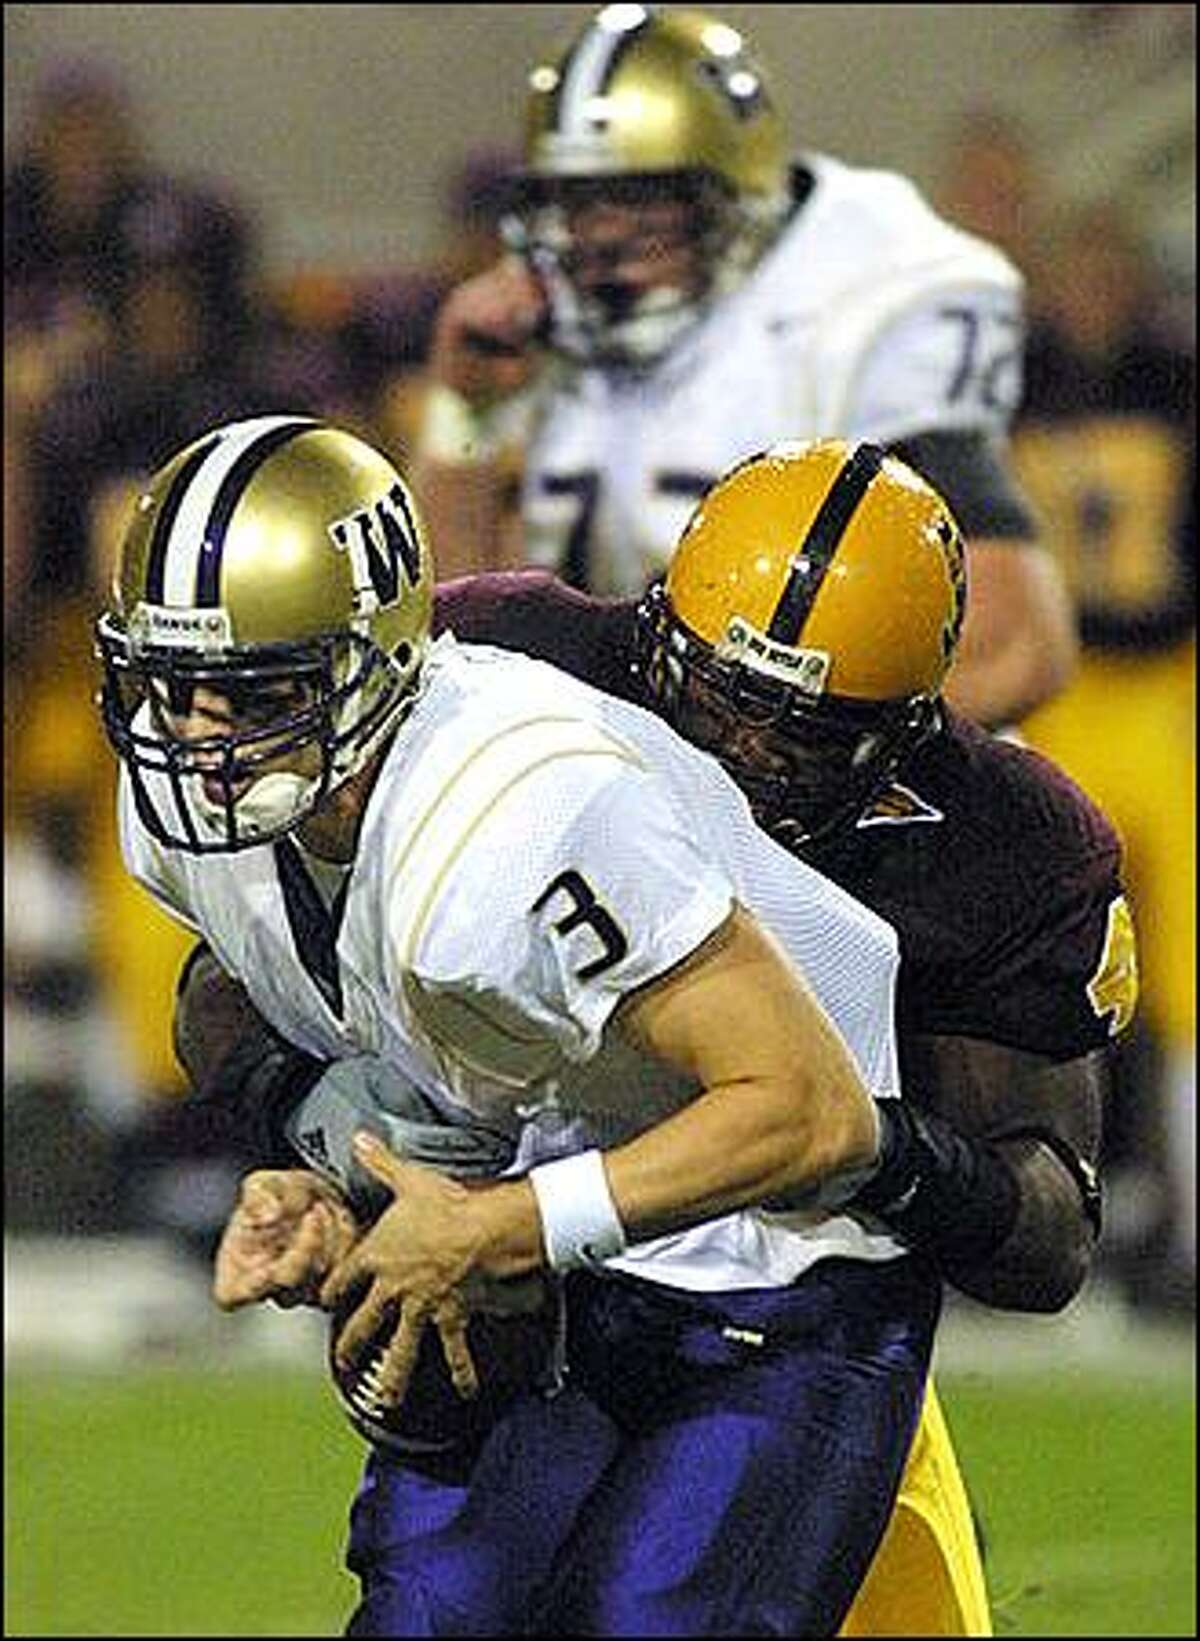 Arizona State defensive end Terrell Suggs, middle, sacks Washington quarterback Cody Pickett (3) as center Todd Bachert, top, looks on, during the first quarter, Saturday, Oct. 26, 2002, in Tempe, Ariz.(AP Photo/Roy Dabner)